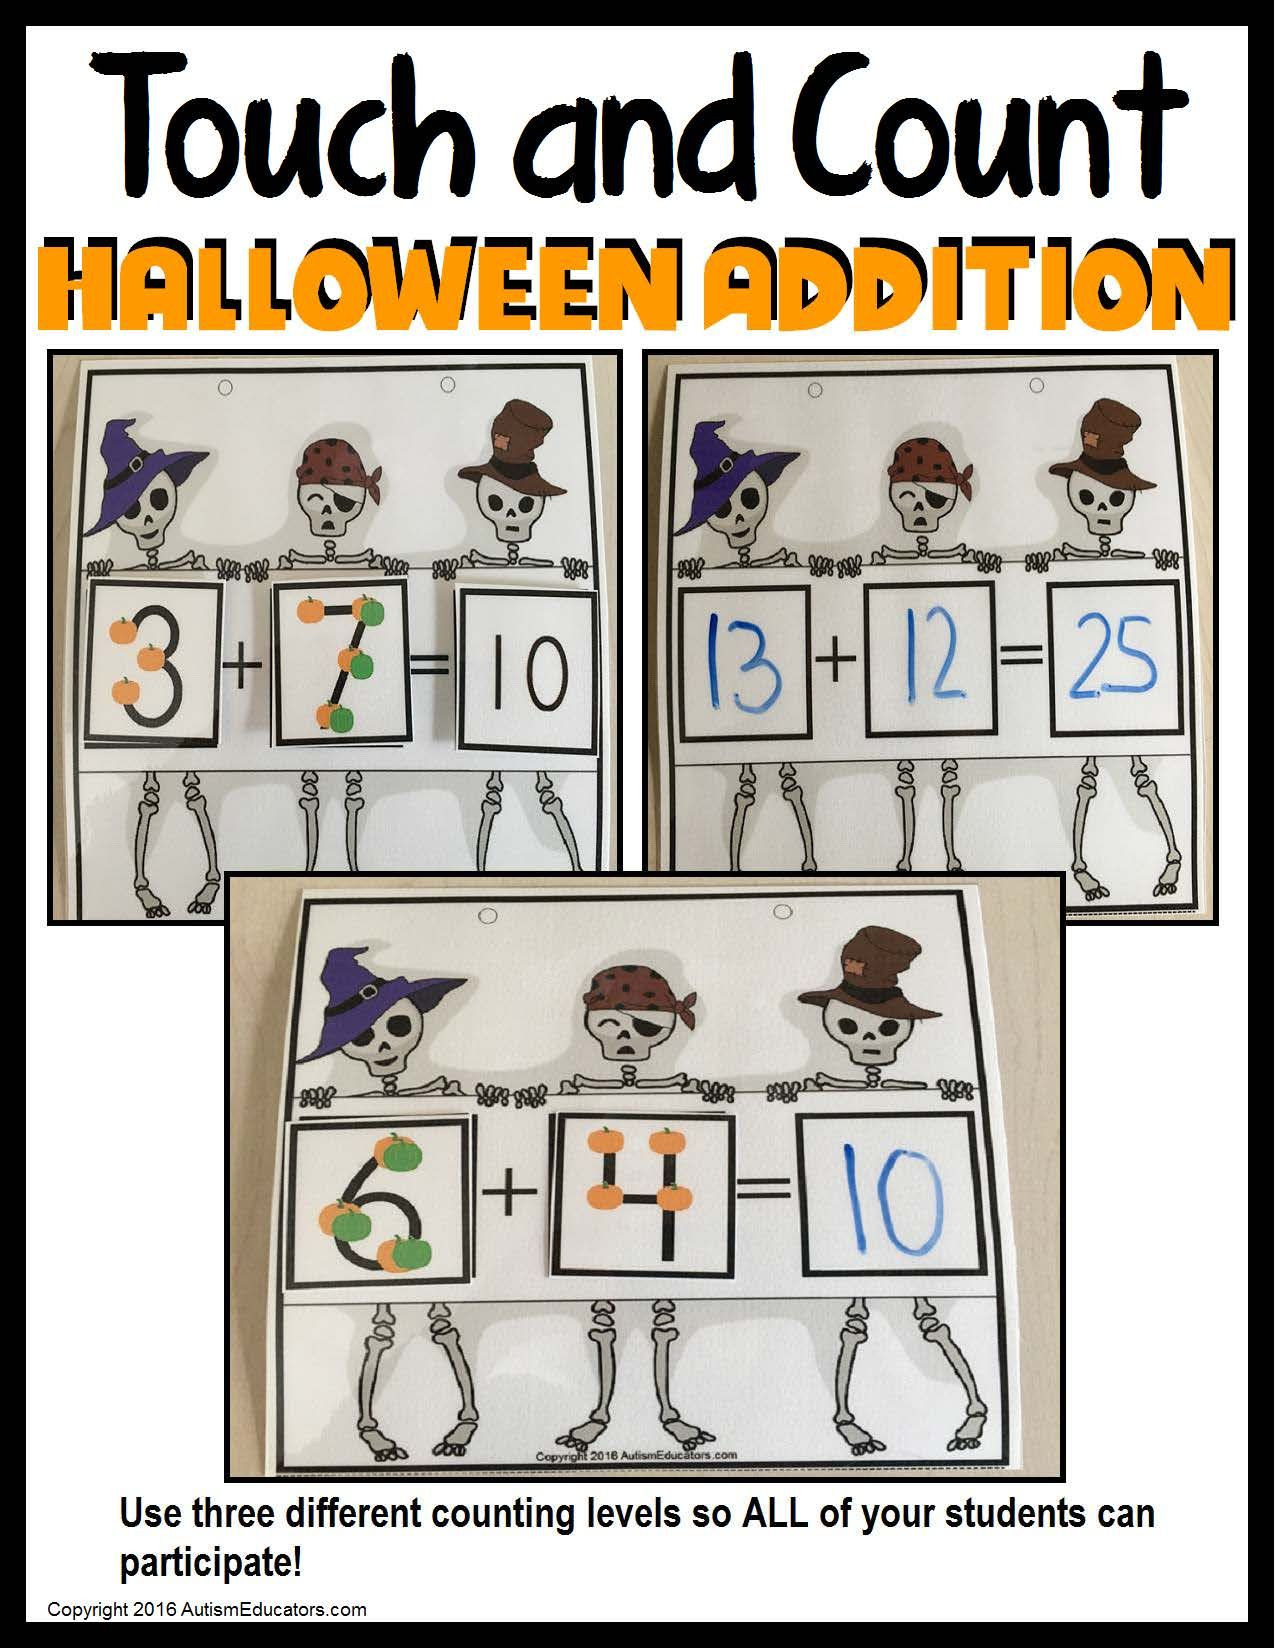 Touch Math Worksheets Generator touch and Count Math – Halloween Addition Using touch Math